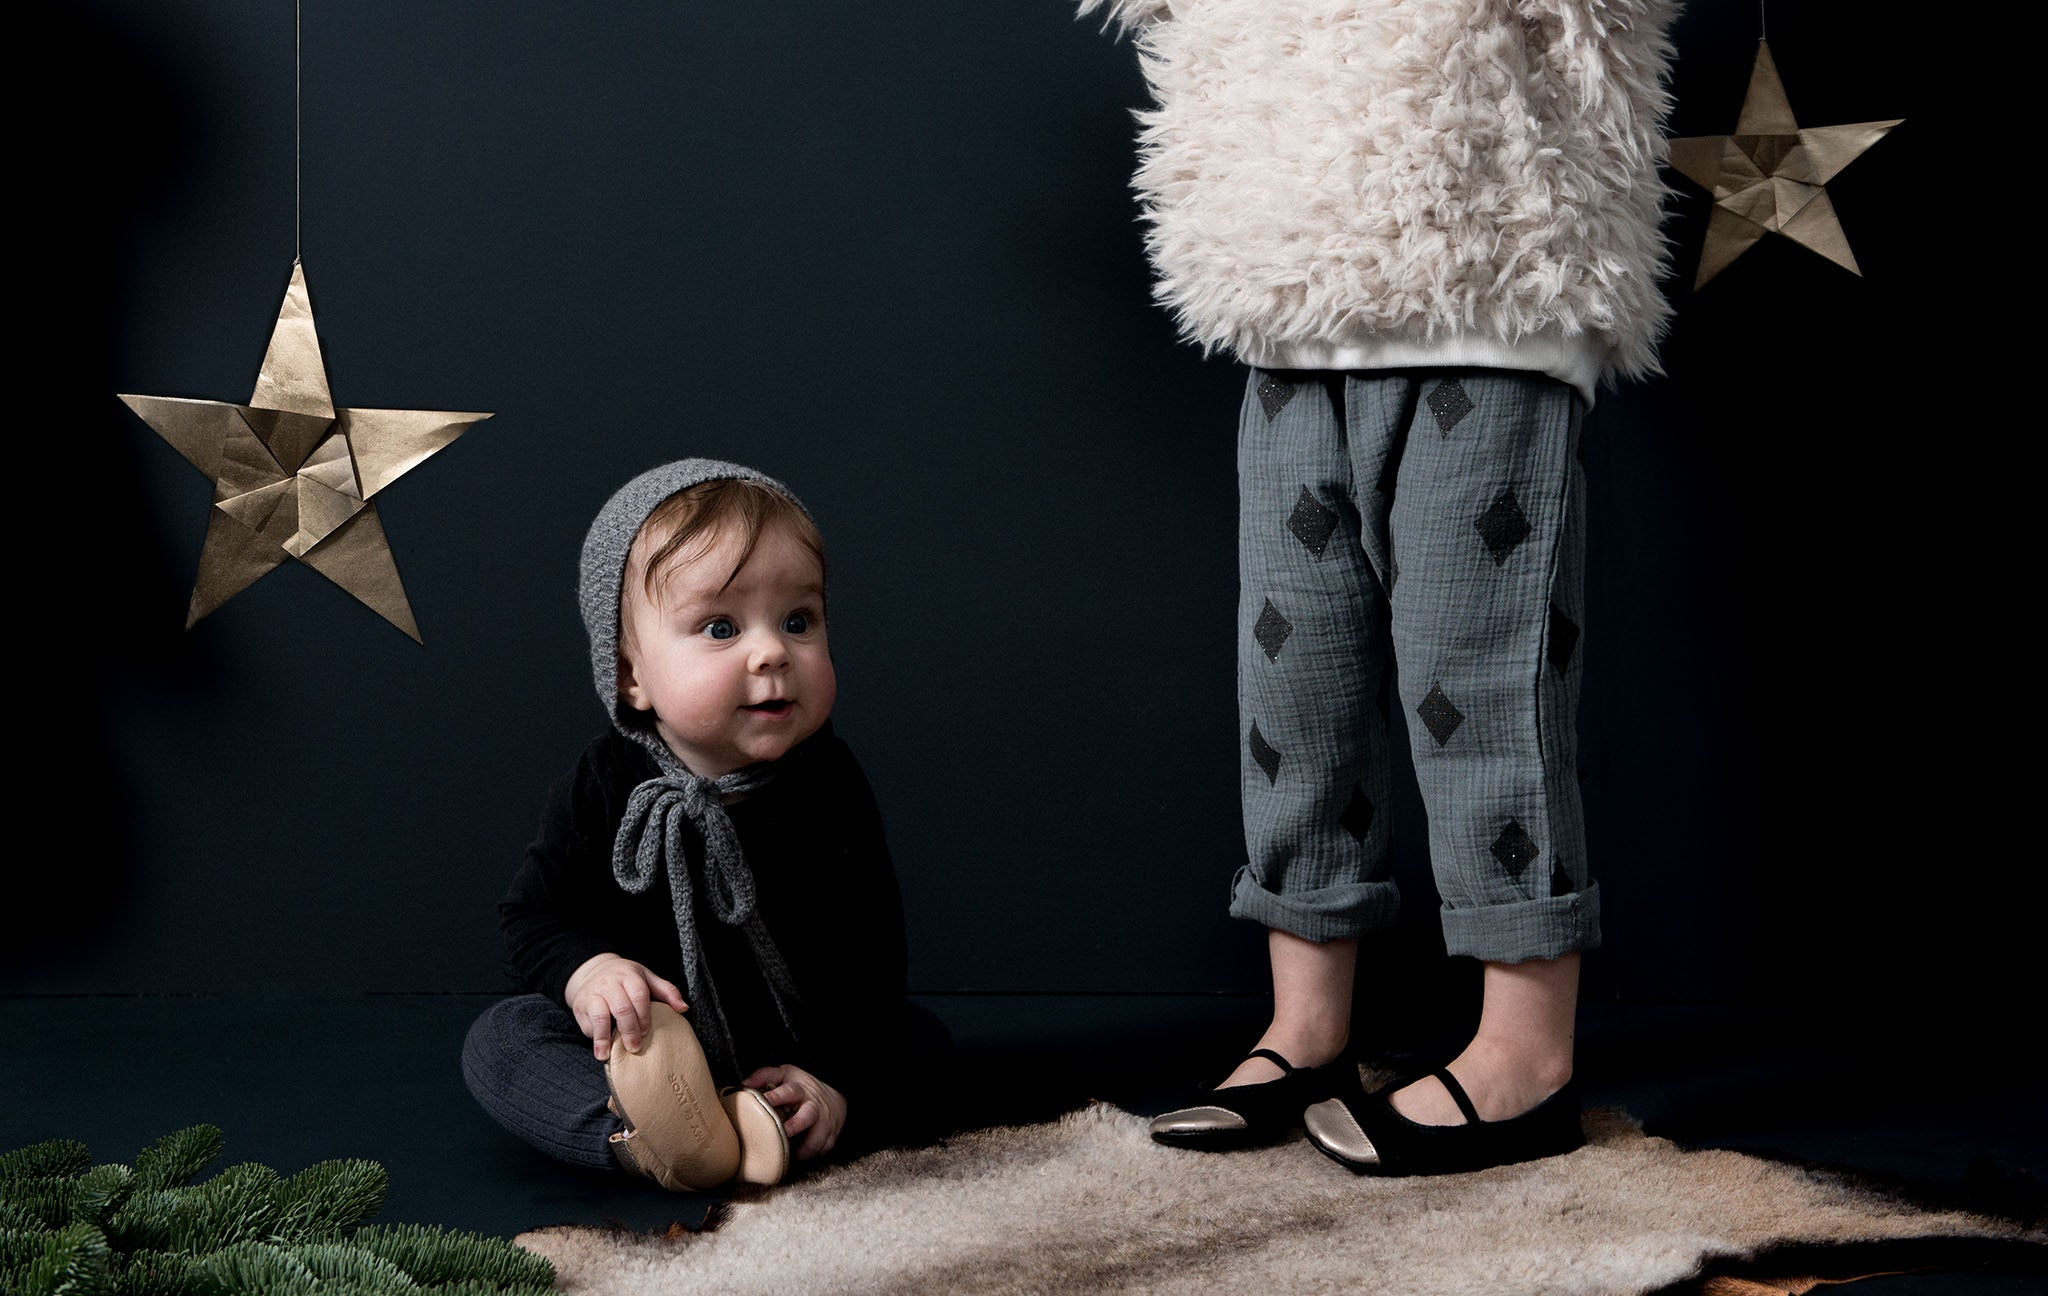 Baby & Toodler softest natural eco leather shoes. Exclusives by Amy & Ivor for Cissywears at Liberty London.